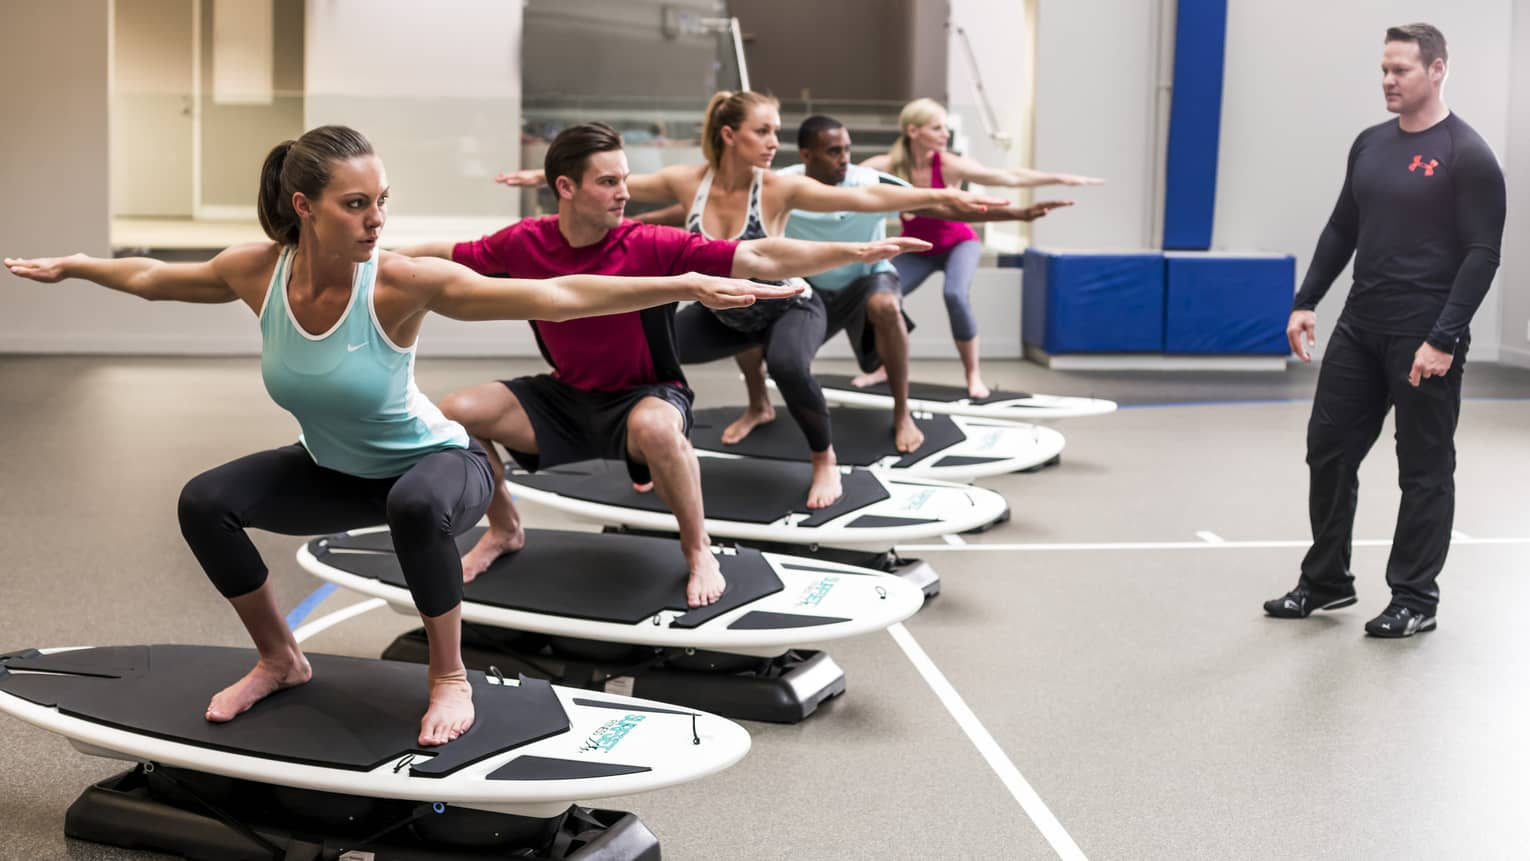 People extend arms, balance on small stationary surfboards in Fitness Centre